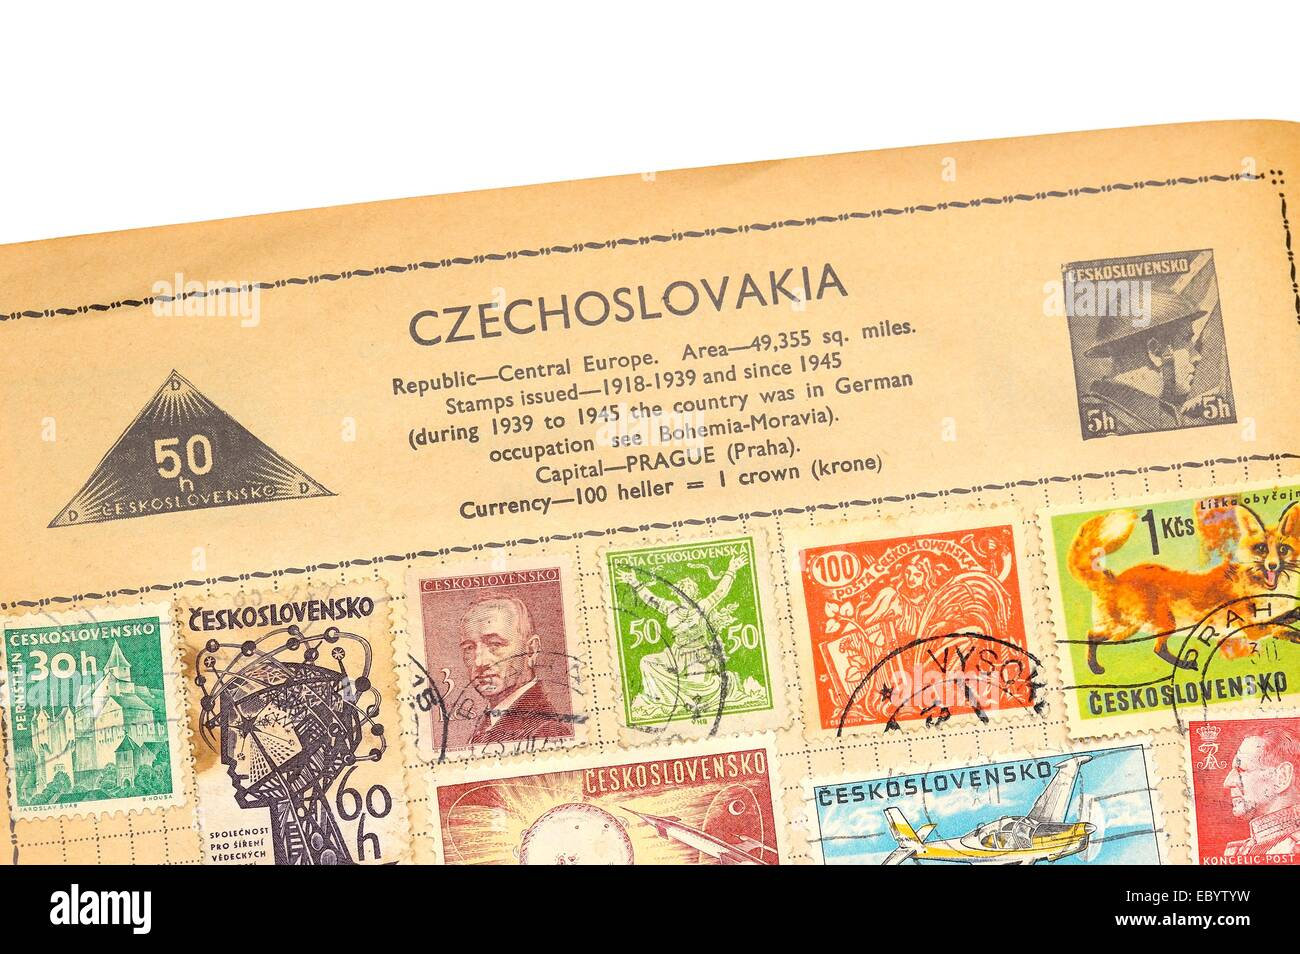 An old fully illustrated stamp album with stamps from Czechoslovakia Stock Photo